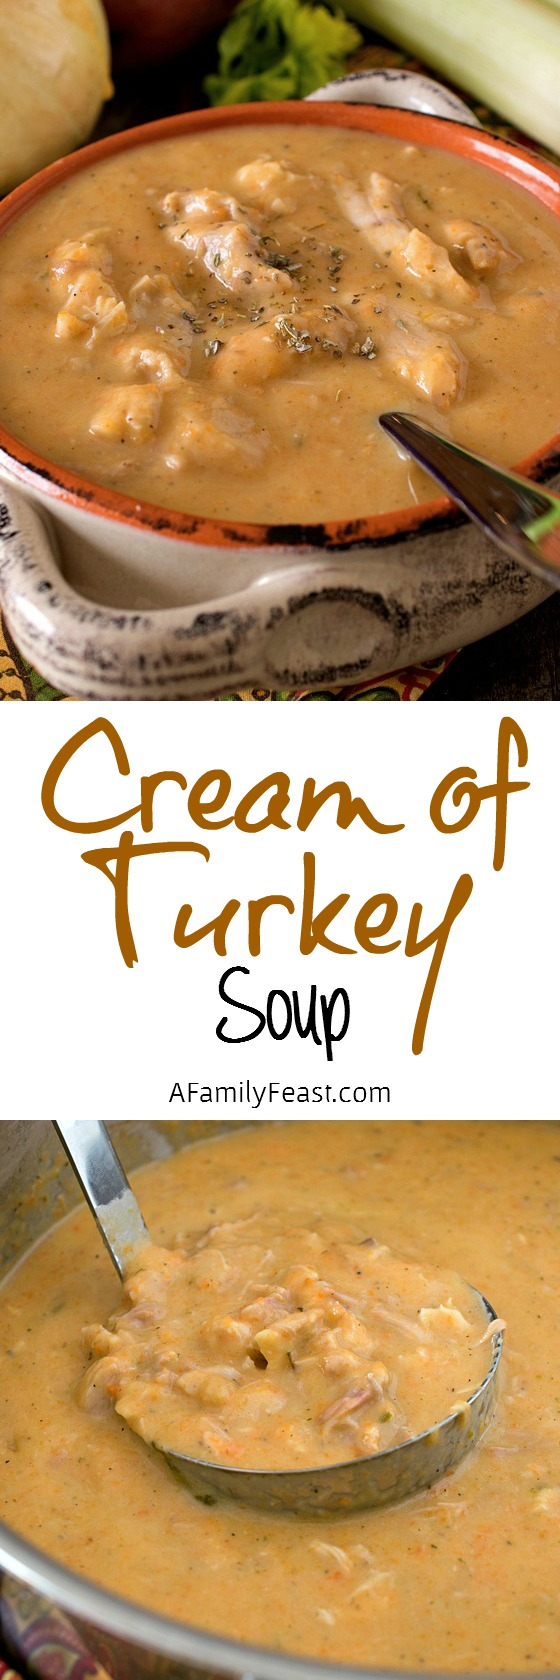 Cream of Turkey Soup - This soup is the ultimate comfort food and a delicious way to cook with leftover Thanksgiving turkey!